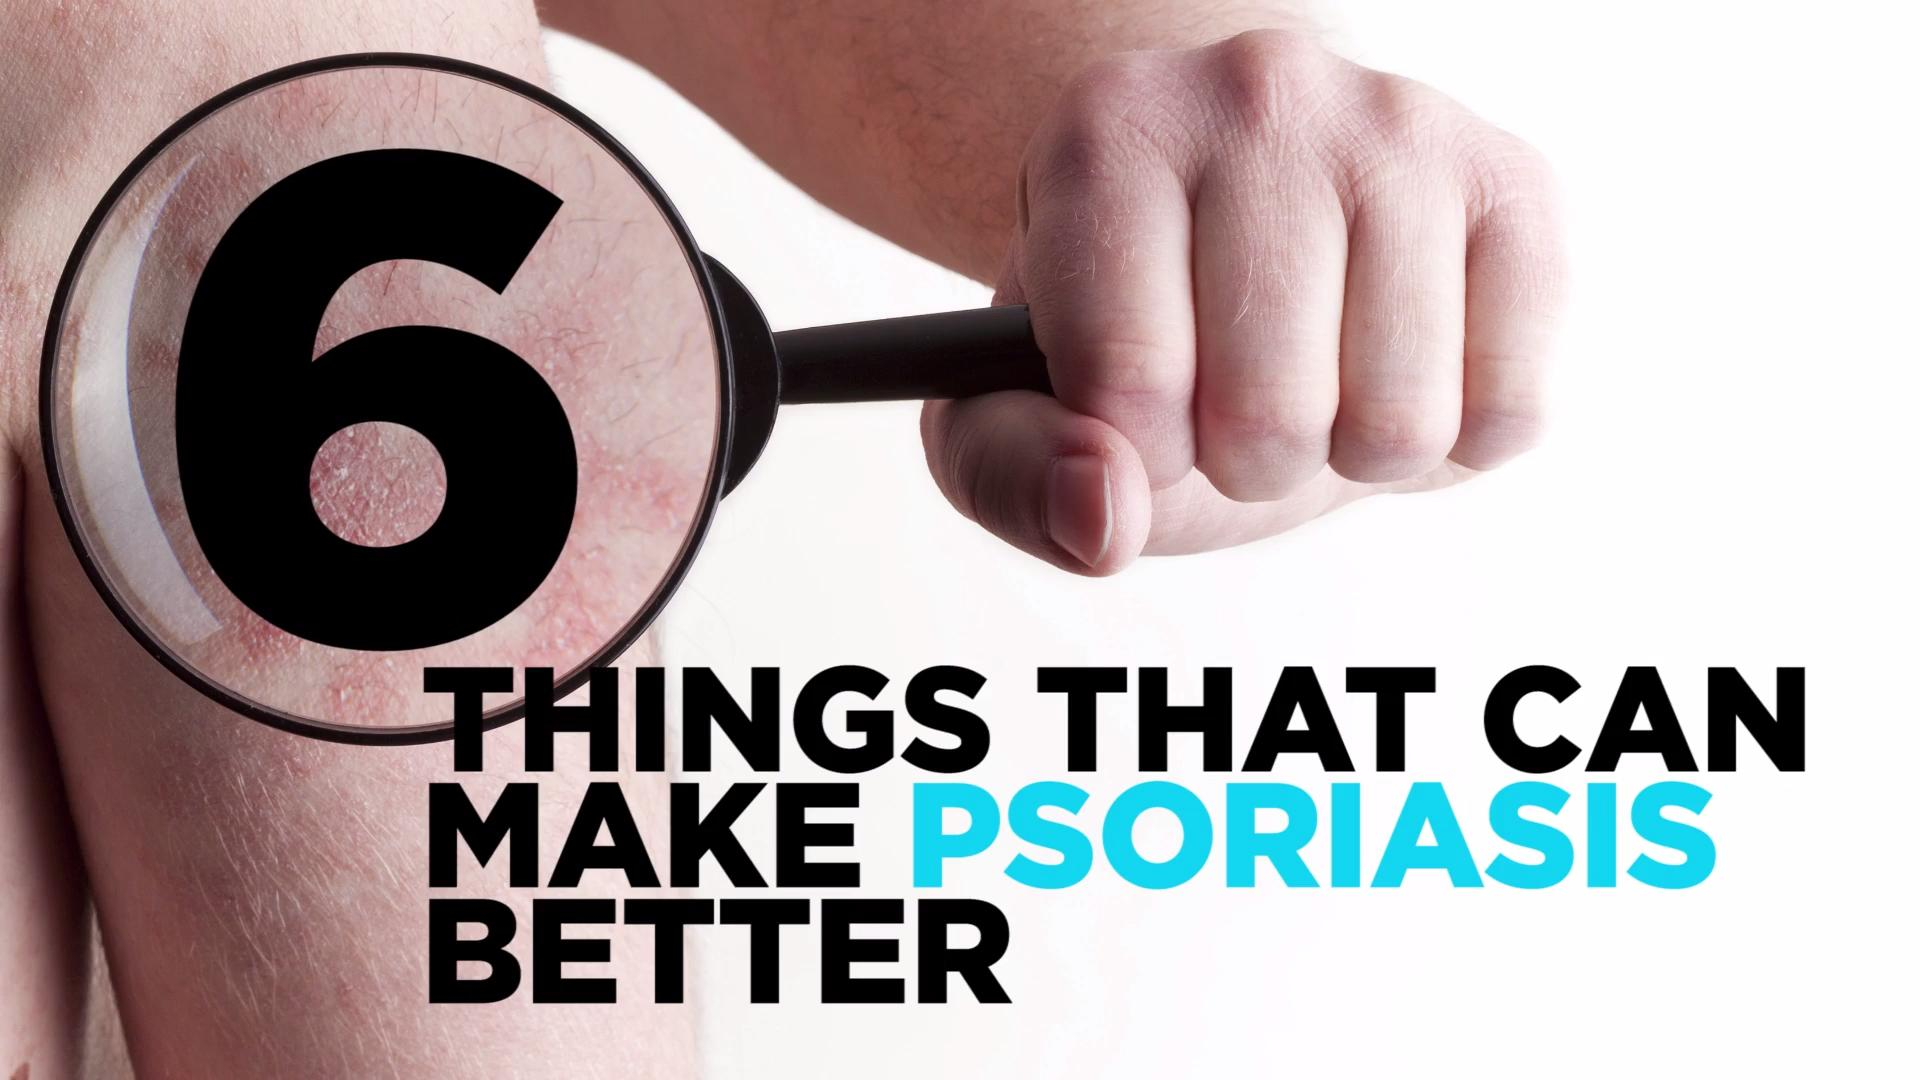 How to prevent psoriasis flare-ups